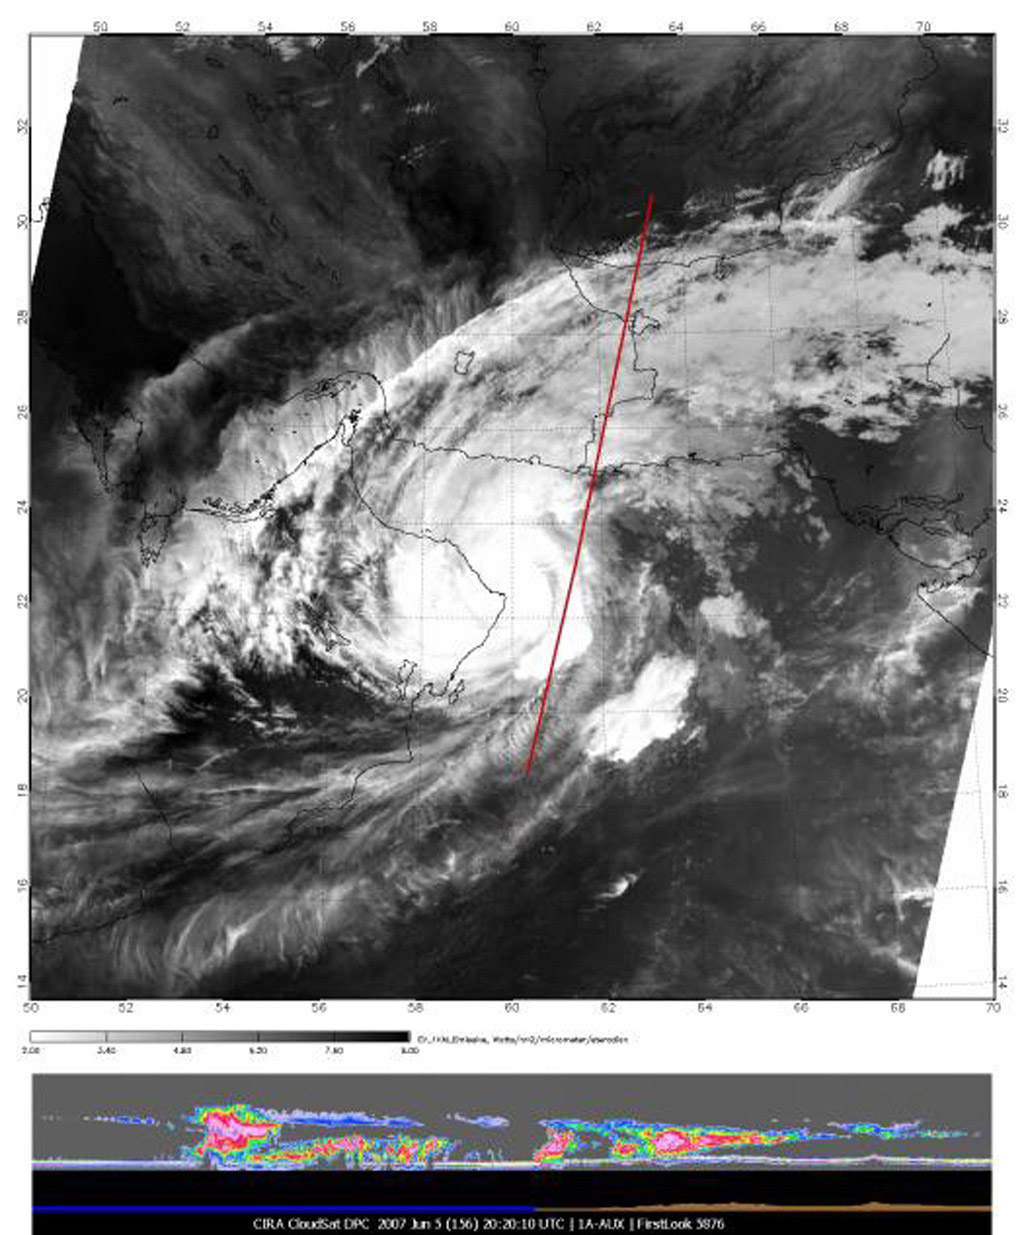 The image of Tropical Cyclone Gonu in the upper panel was taken by the Moderate Resolution Imaging Spectroradiometer (MODIS) instrument on NASA's Aqua satellite on June 5, 2007, at approximately 20:20 UTC.